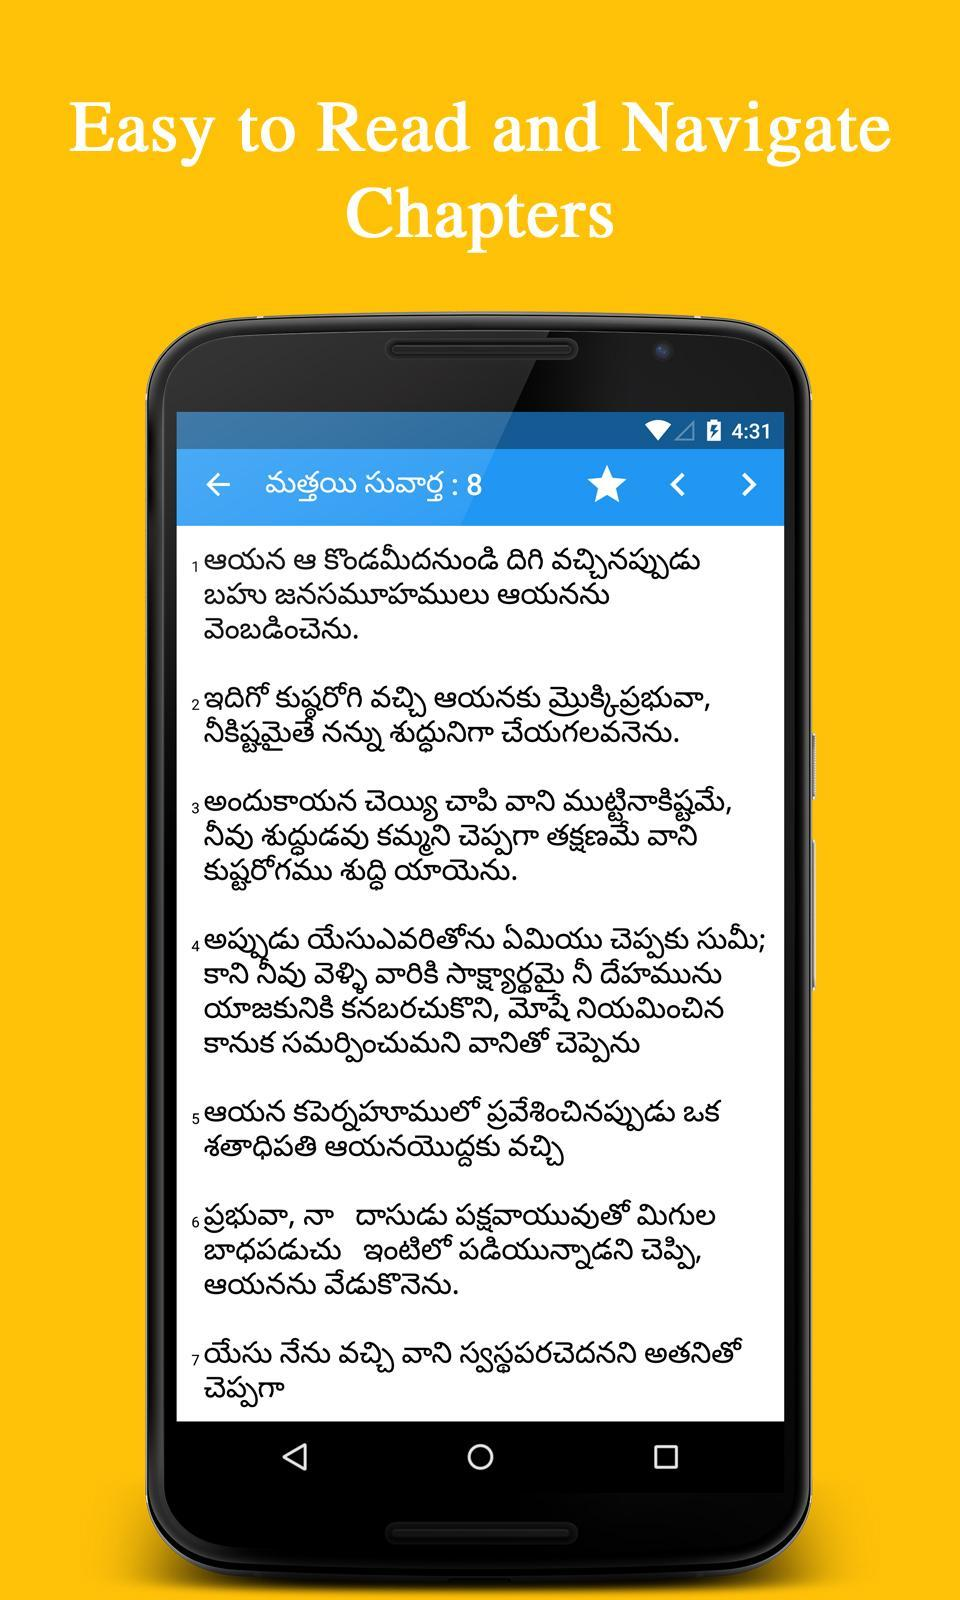 Telugu Bible ( పవిత్ర బైబిల్ ) for Android - APK